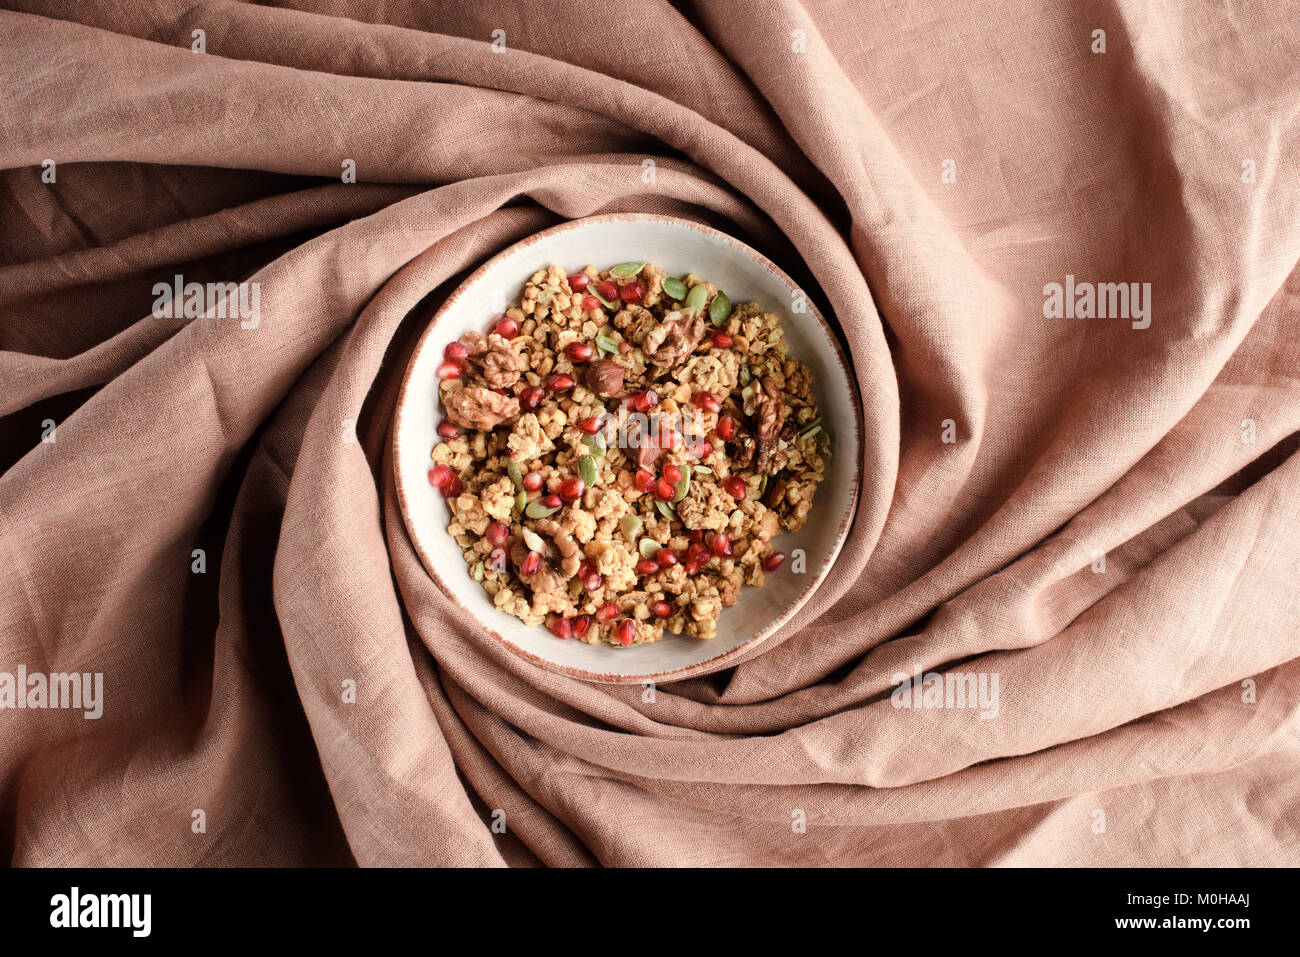 top view of plate with homemade granola on beige tablecloth - Stock Image